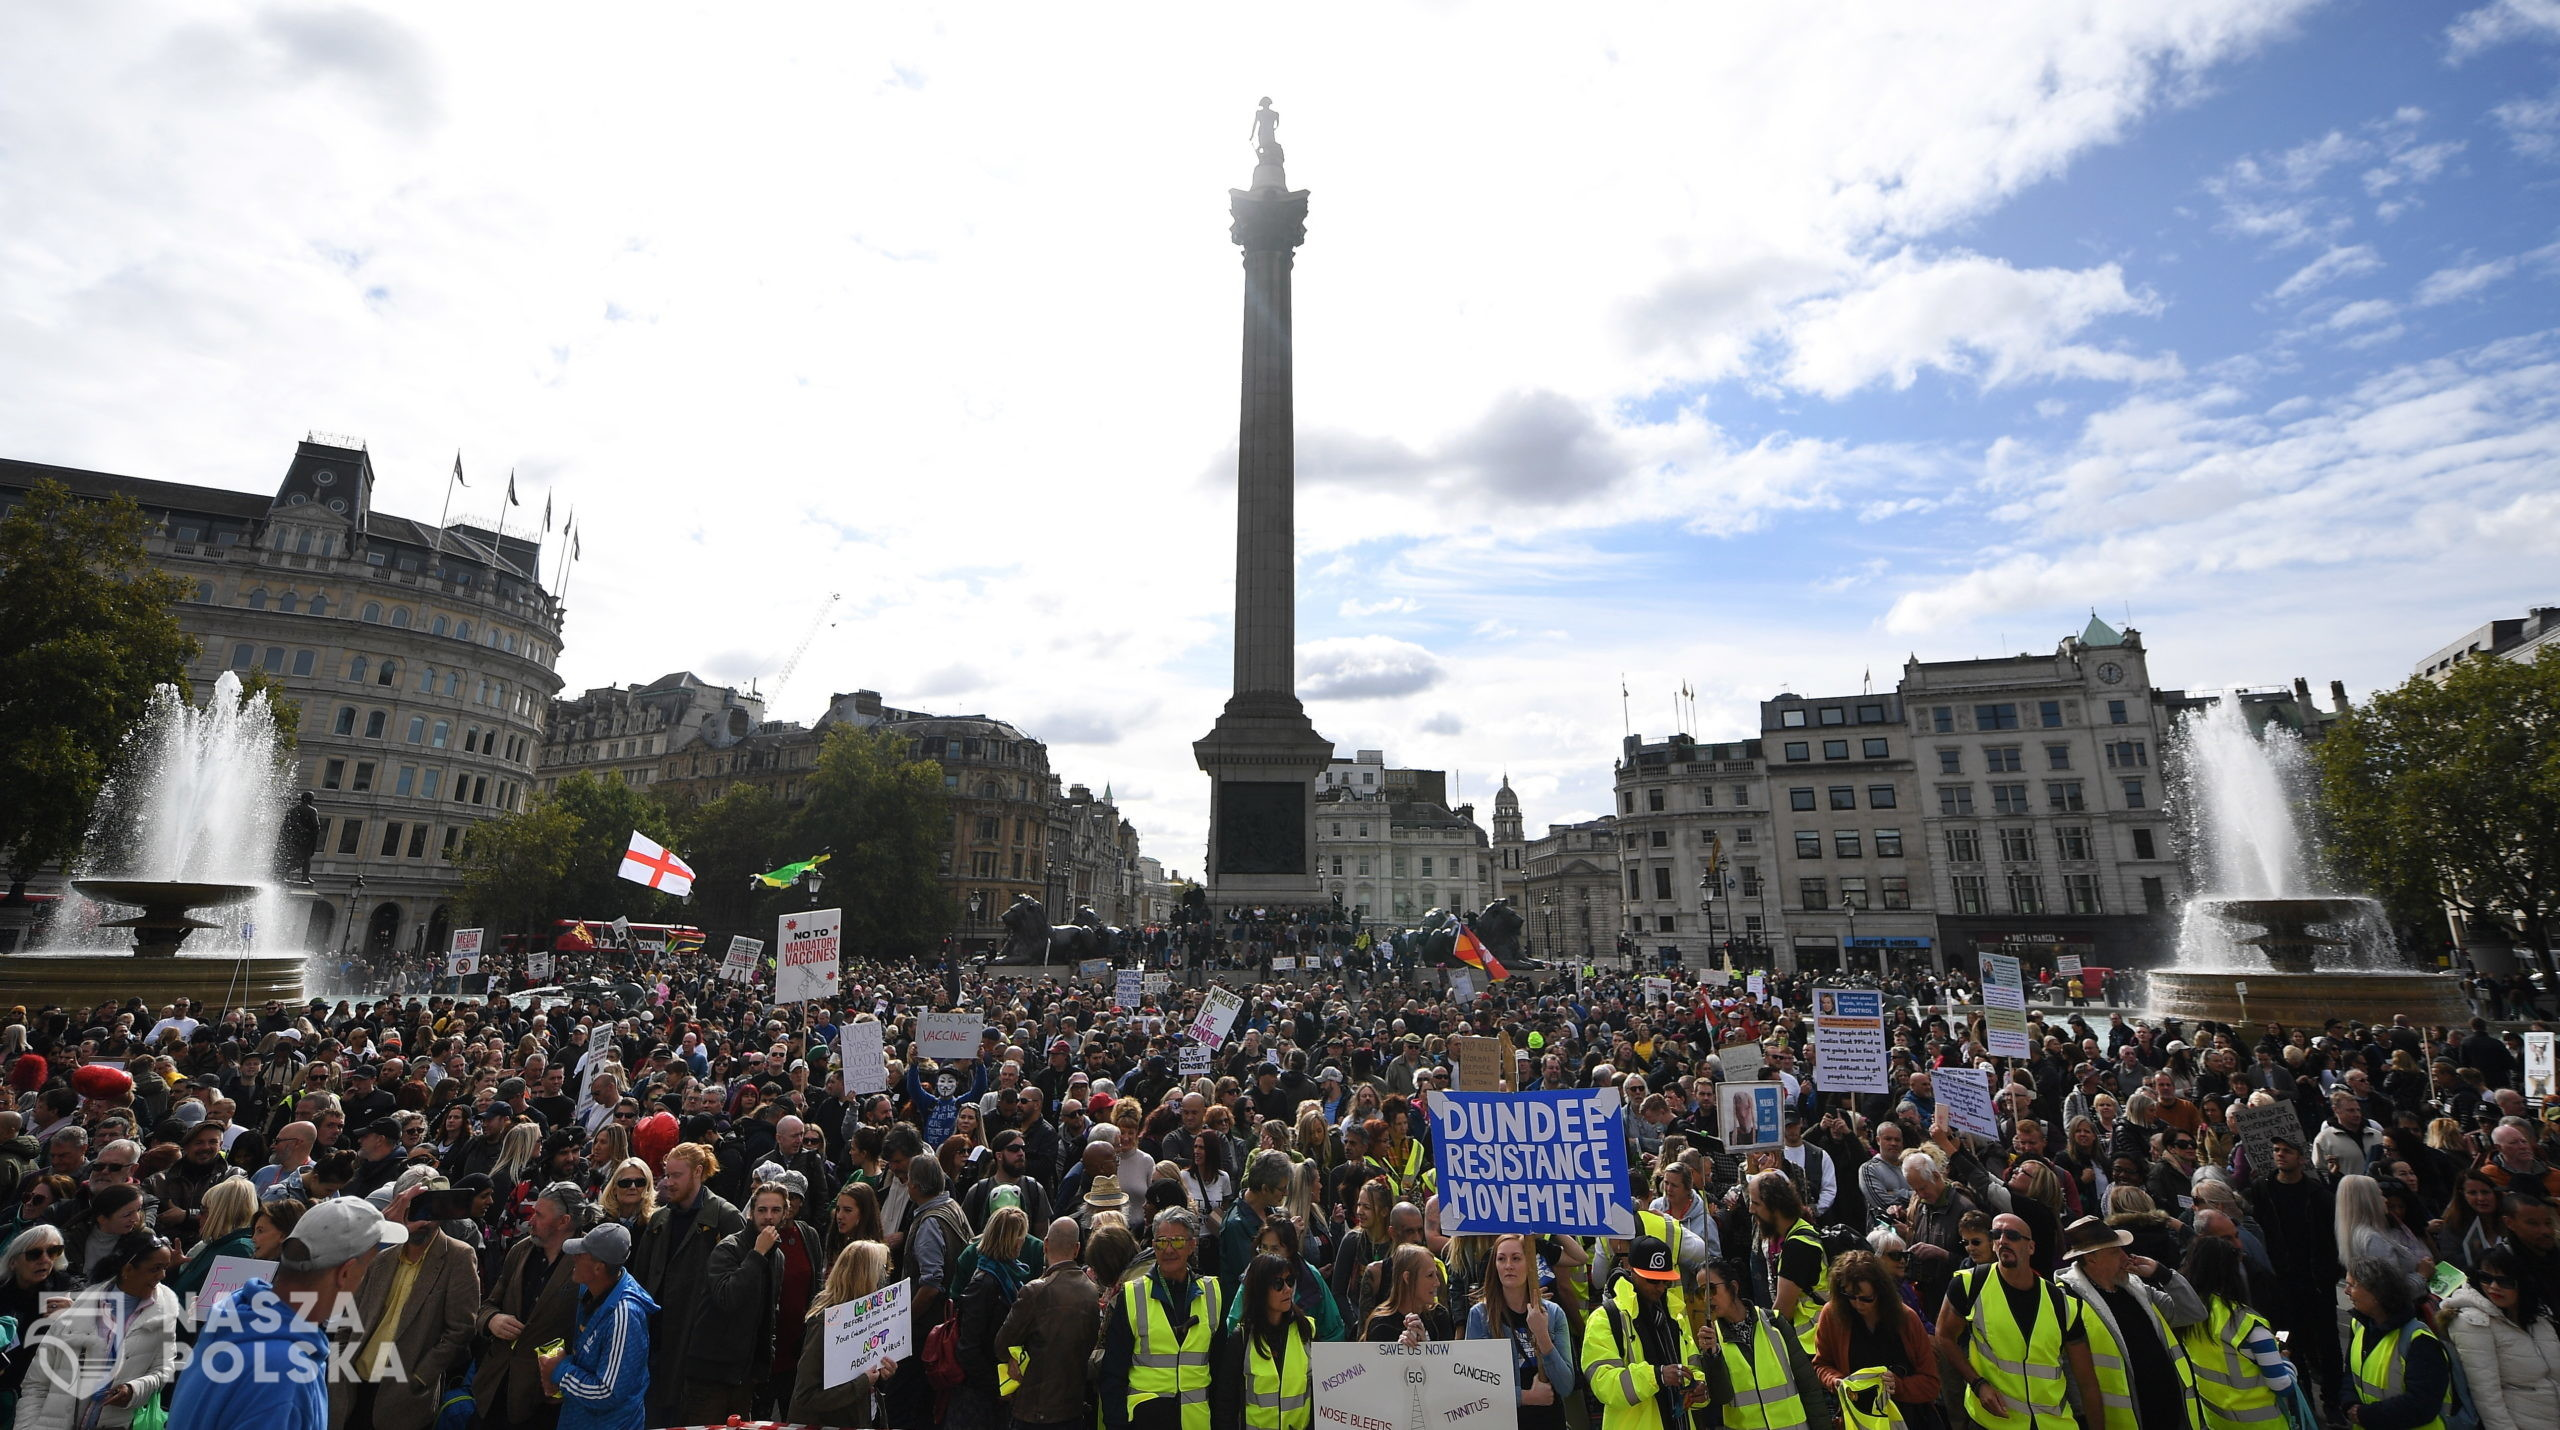 epa08698726 People attend a 'We Do Not Consent' rally at Trafalgar Square in London, Britain, 26 September 2020. Thousends of people gathered at a demonstration to protest against new coronavirus restrictions.  EPA/ANDY RAIN  Dostawca: PAP/EPA.